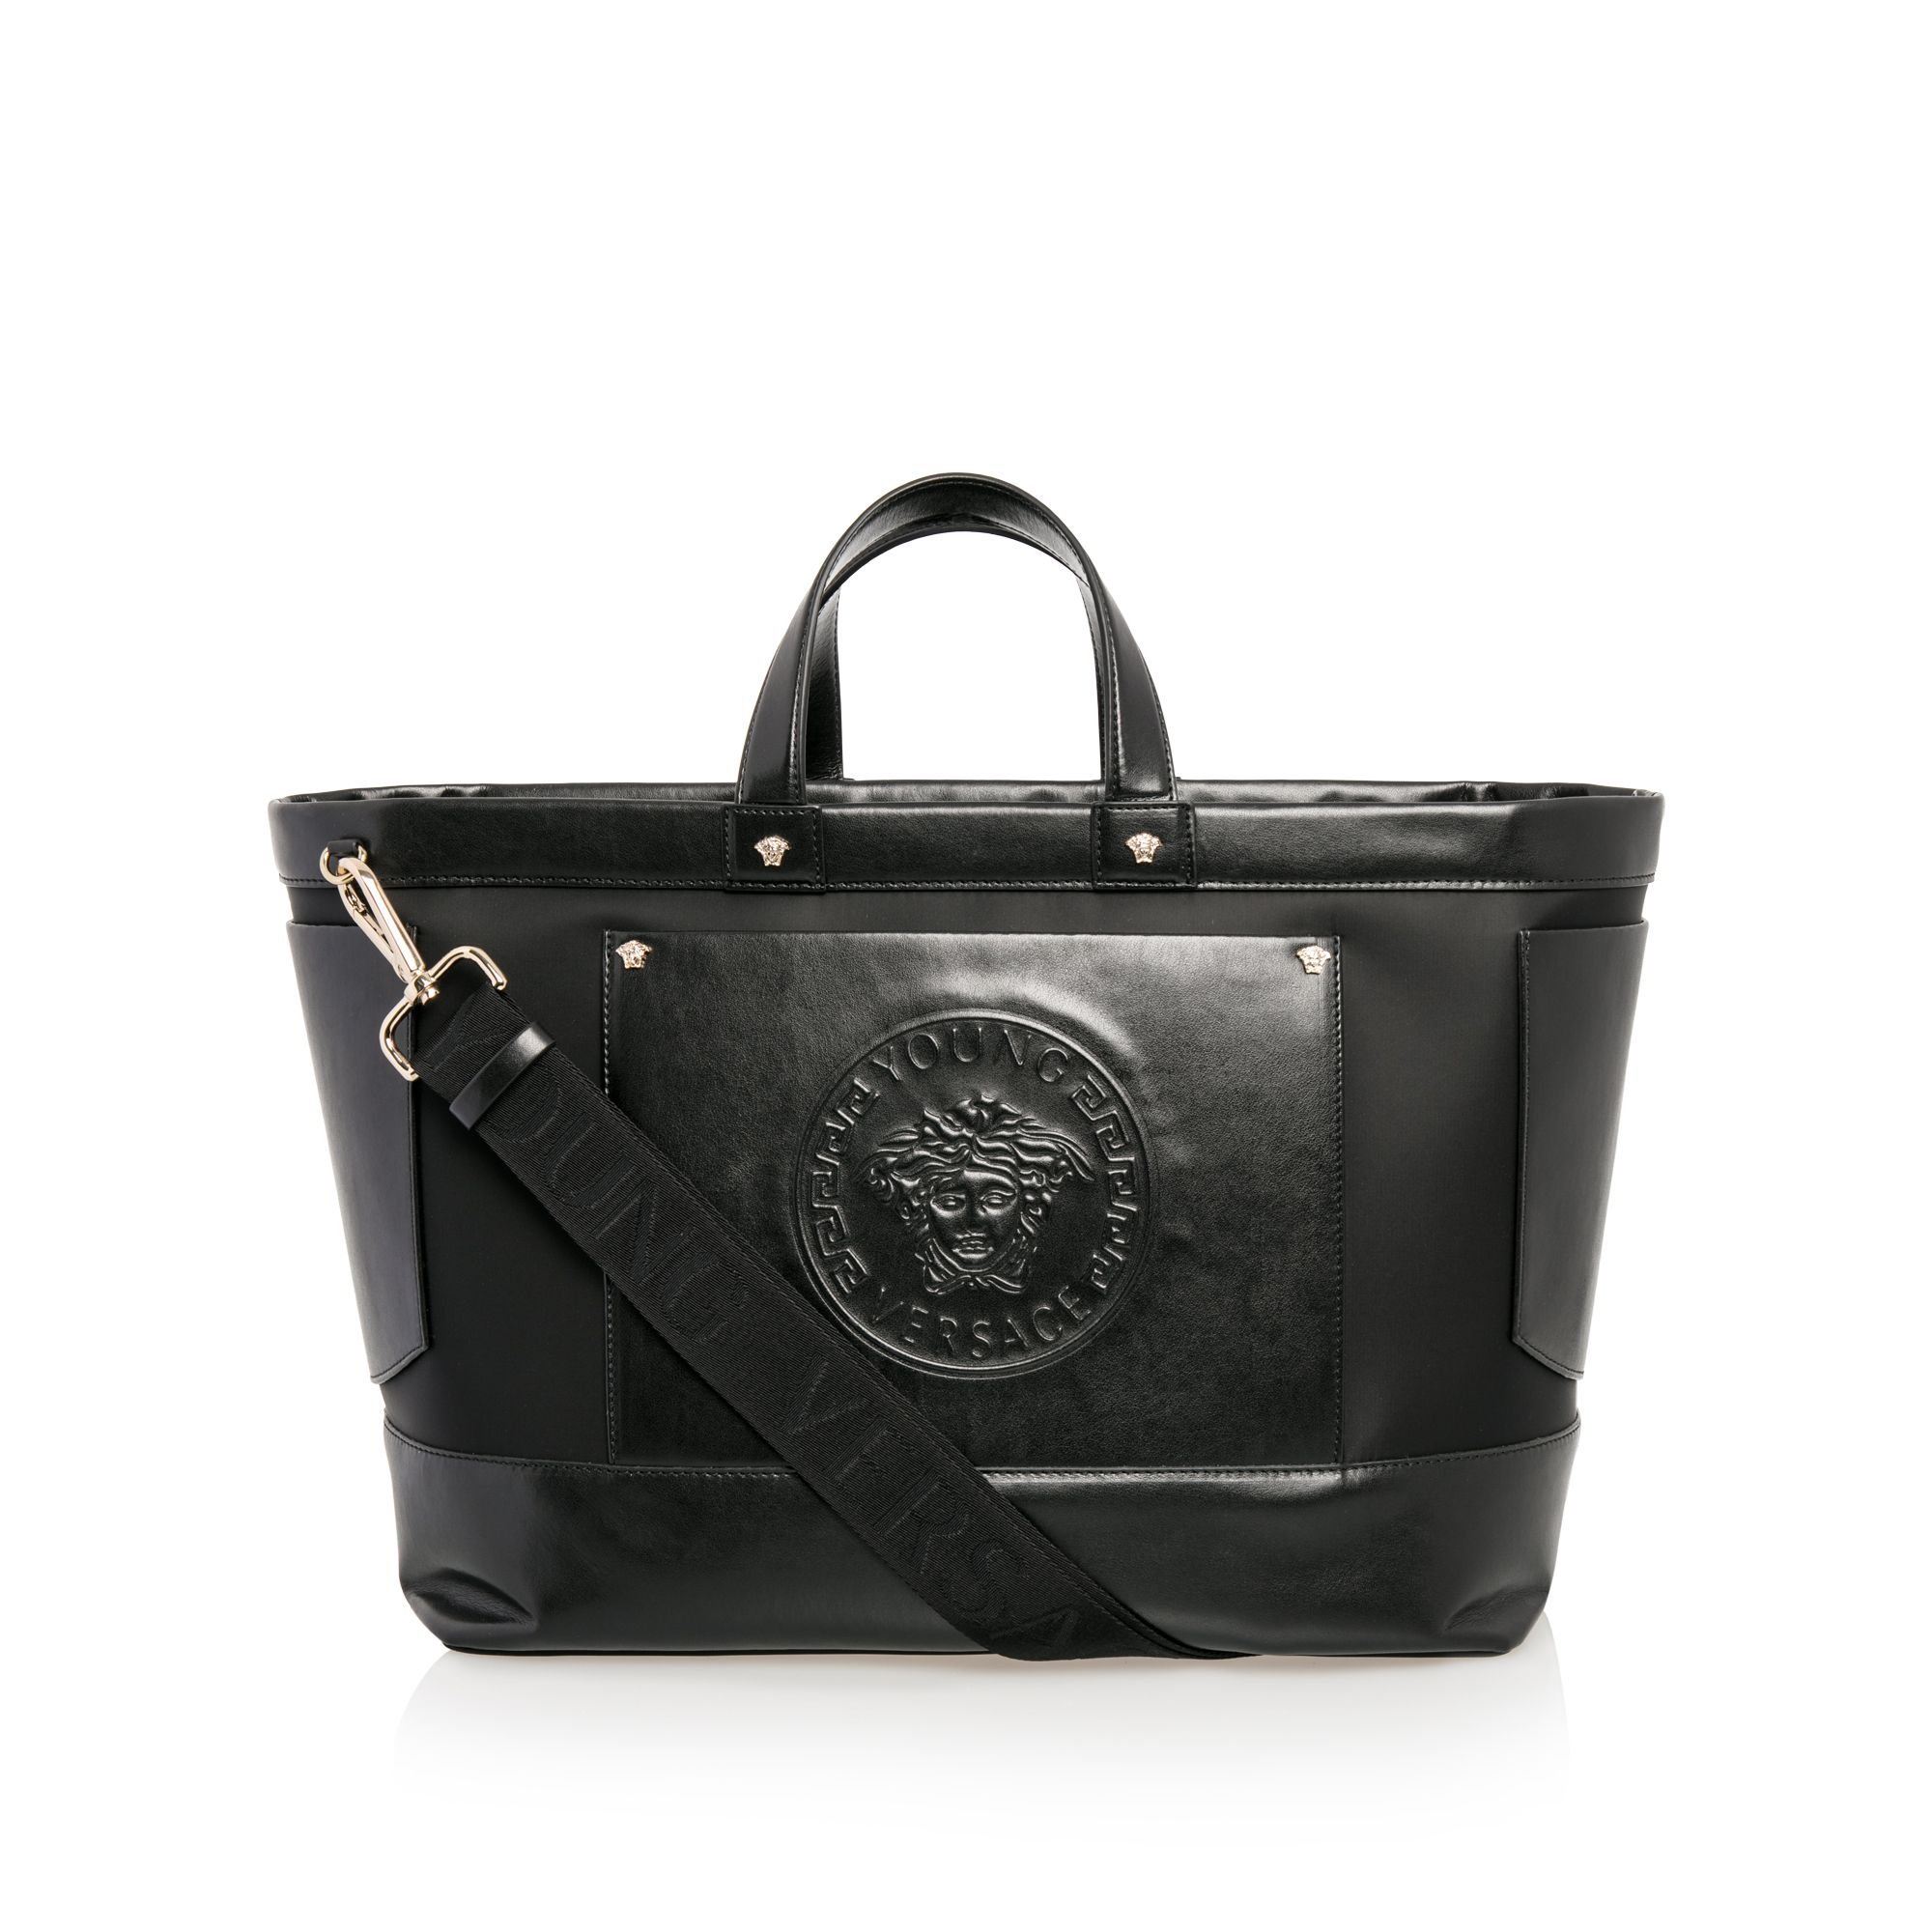 a7d96ea98469 YOUNG VERSACE Baby Girls Medusa Changing Bag - Black Baby girls changing bag  • Premium leather fabric • Two carry handles • Adjustable shoulder strap •  Main ...